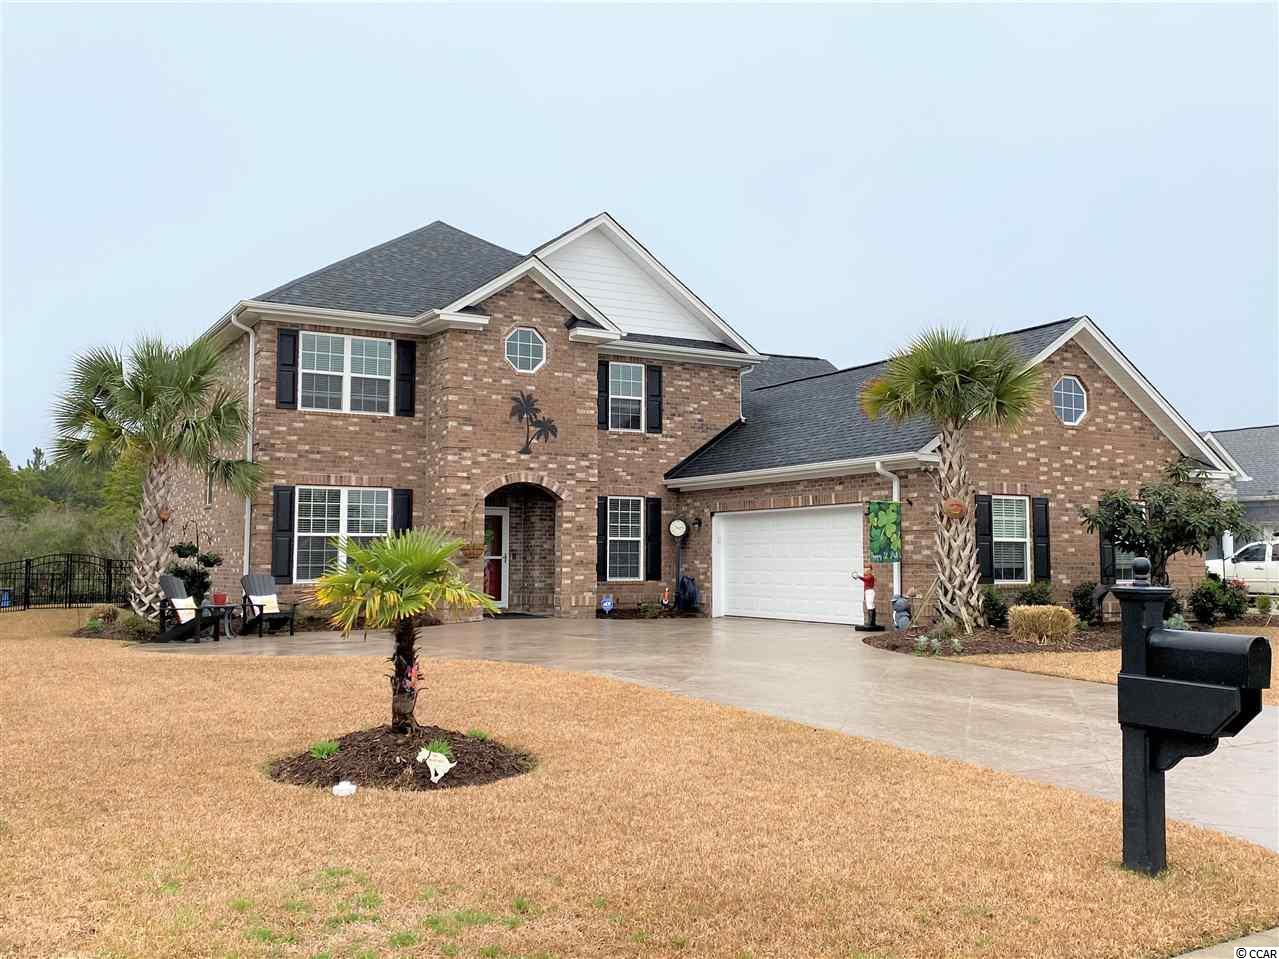 Stately Home to be built in Prestigious Cypress River Plantation. Water View, Cul-De-Sac lot.  This Gated Community is Located in the Award Winning St. James School District Just Minutes from the Beach, State Park, Murrells Inlet Marsh Walk, and Restaurants.  Amenities include Clubhouse with Fitness Room, Pool Complex, Tennis Court, Basketball Court, Playground, Boat Launch, Day Dock.  This Two-Story Plan Features A First Floor Main Bedroom Suite W/ Spacious Bathroom W/Double Sink, Tiled Shower & Tub.  Kitchen Features Soft Closing Doors & Drawers, Granite Tops, Tile Backsplash, Undercabinet Lighting & Granite Breakfast Bar.  Second Floor Has 3 Bedrooms, 2 Full Baths, & Optional Bonus Room.   Quality Construction By Seasoned Local Builder.  Finish Touches Include Tile Showers, Engineered Hardwood Flooring in Living Areas, Tile In Wet Areas.  Exterior Photo Is Of Another Existing Home Built By Same Builder. Sq. Footage Estimated Per Print, Buyer To Verify.